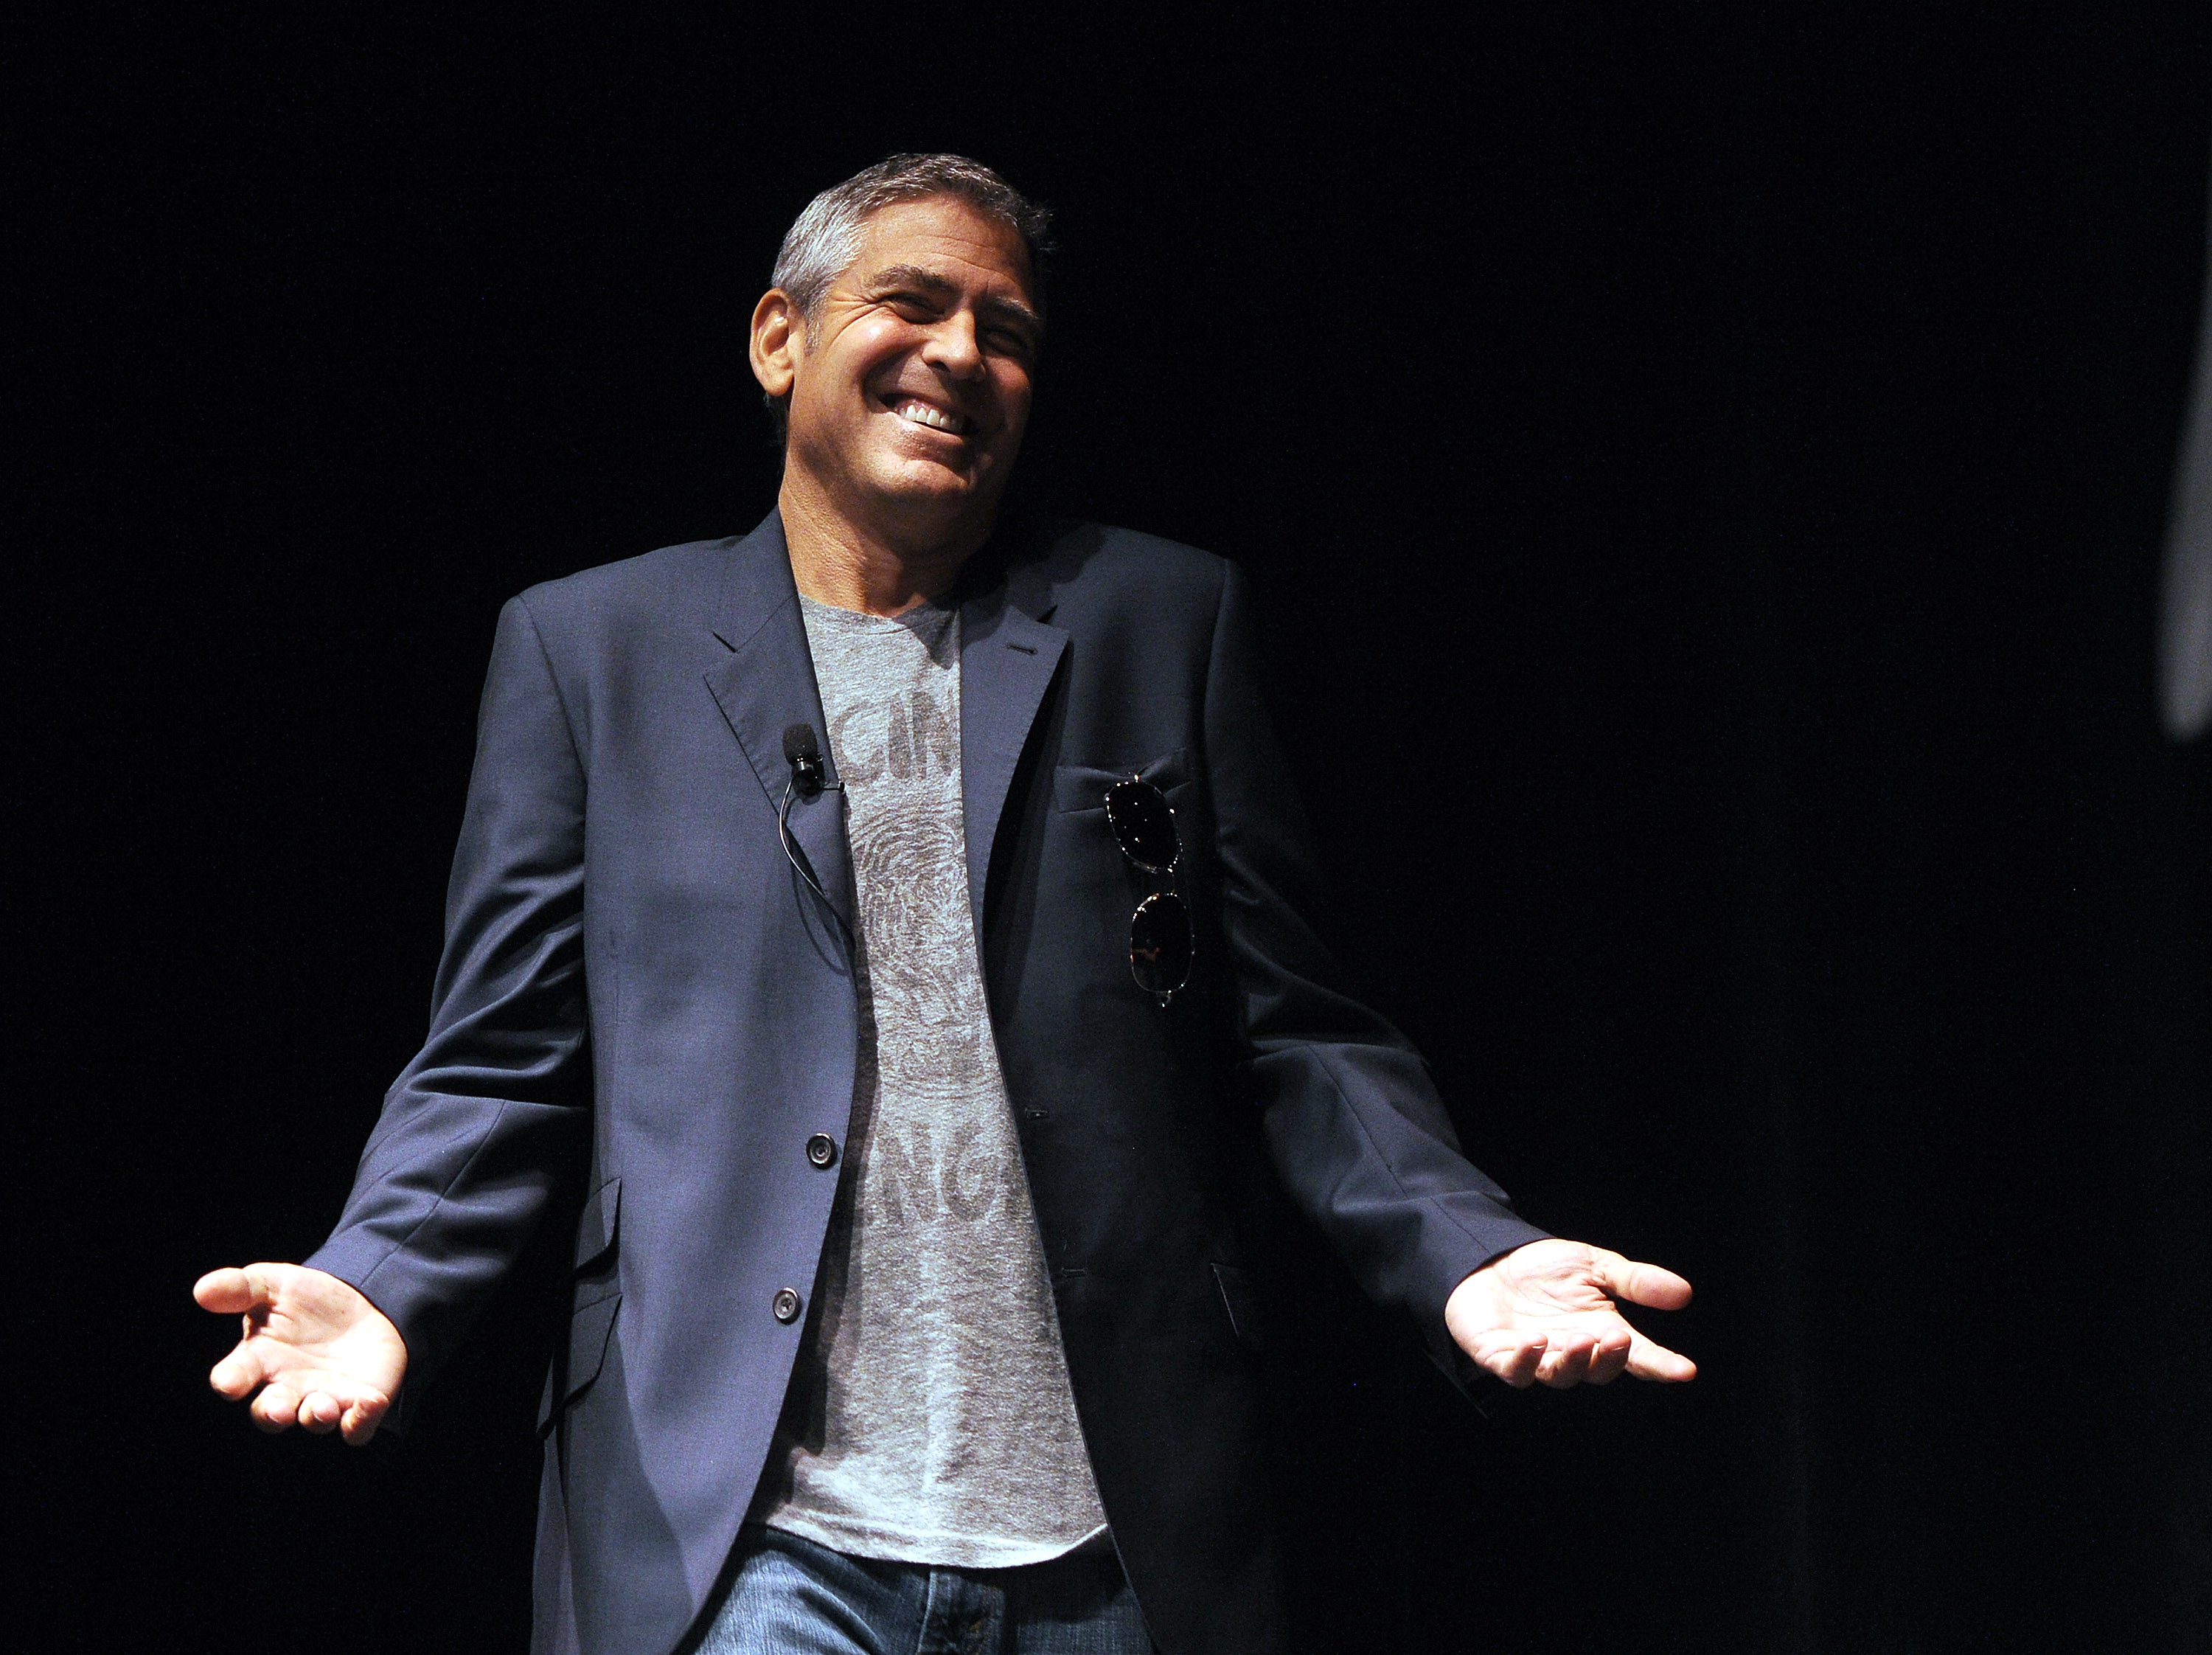 The 23rd Annual Palm Springs International Film Festival - Talking Pictures: Q&A With George Clooney